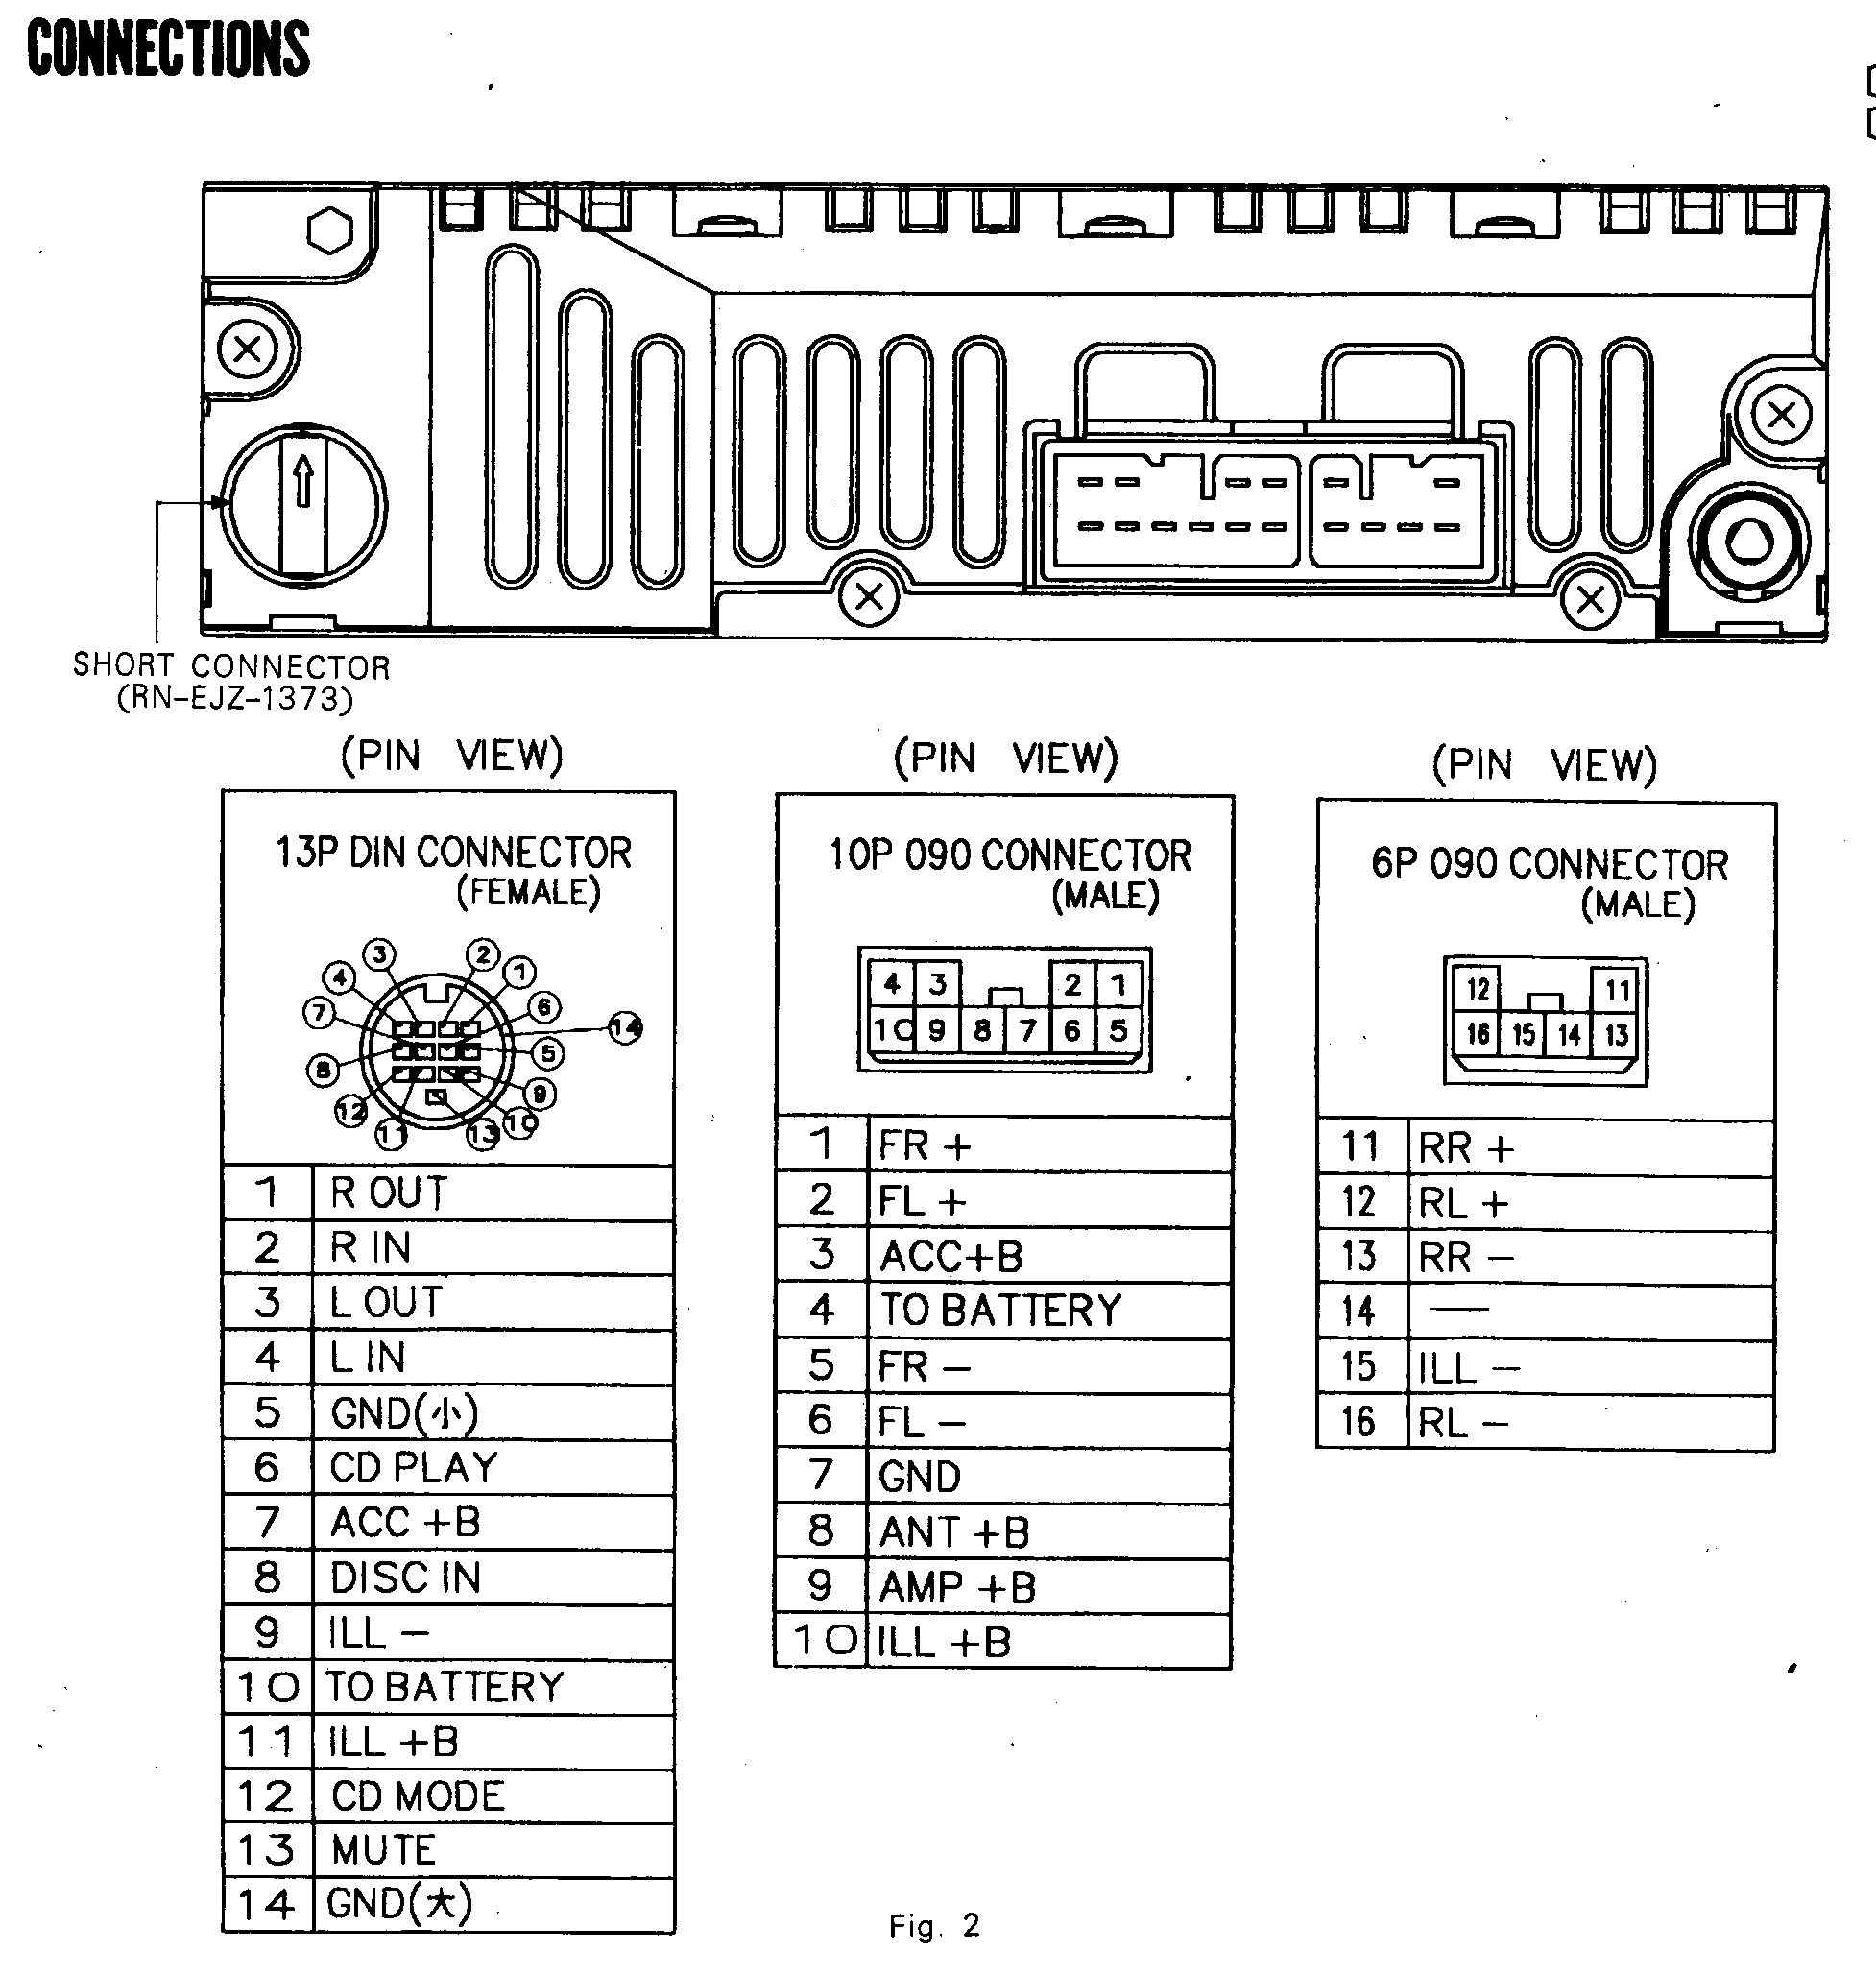 Toyota Stereo Wiring Harness Diagram - Wiring Diagram Detailed on aftermarket radio connectors, aftermarket radio antenna, aftermarket engine harness, jvc radio harness, aftermarket wire harness, aftermarket radio with navigation, 2012 dodge ram radio harness, aftermarket stereo color codes, stereo harness, aftermarket stereo adapter box,